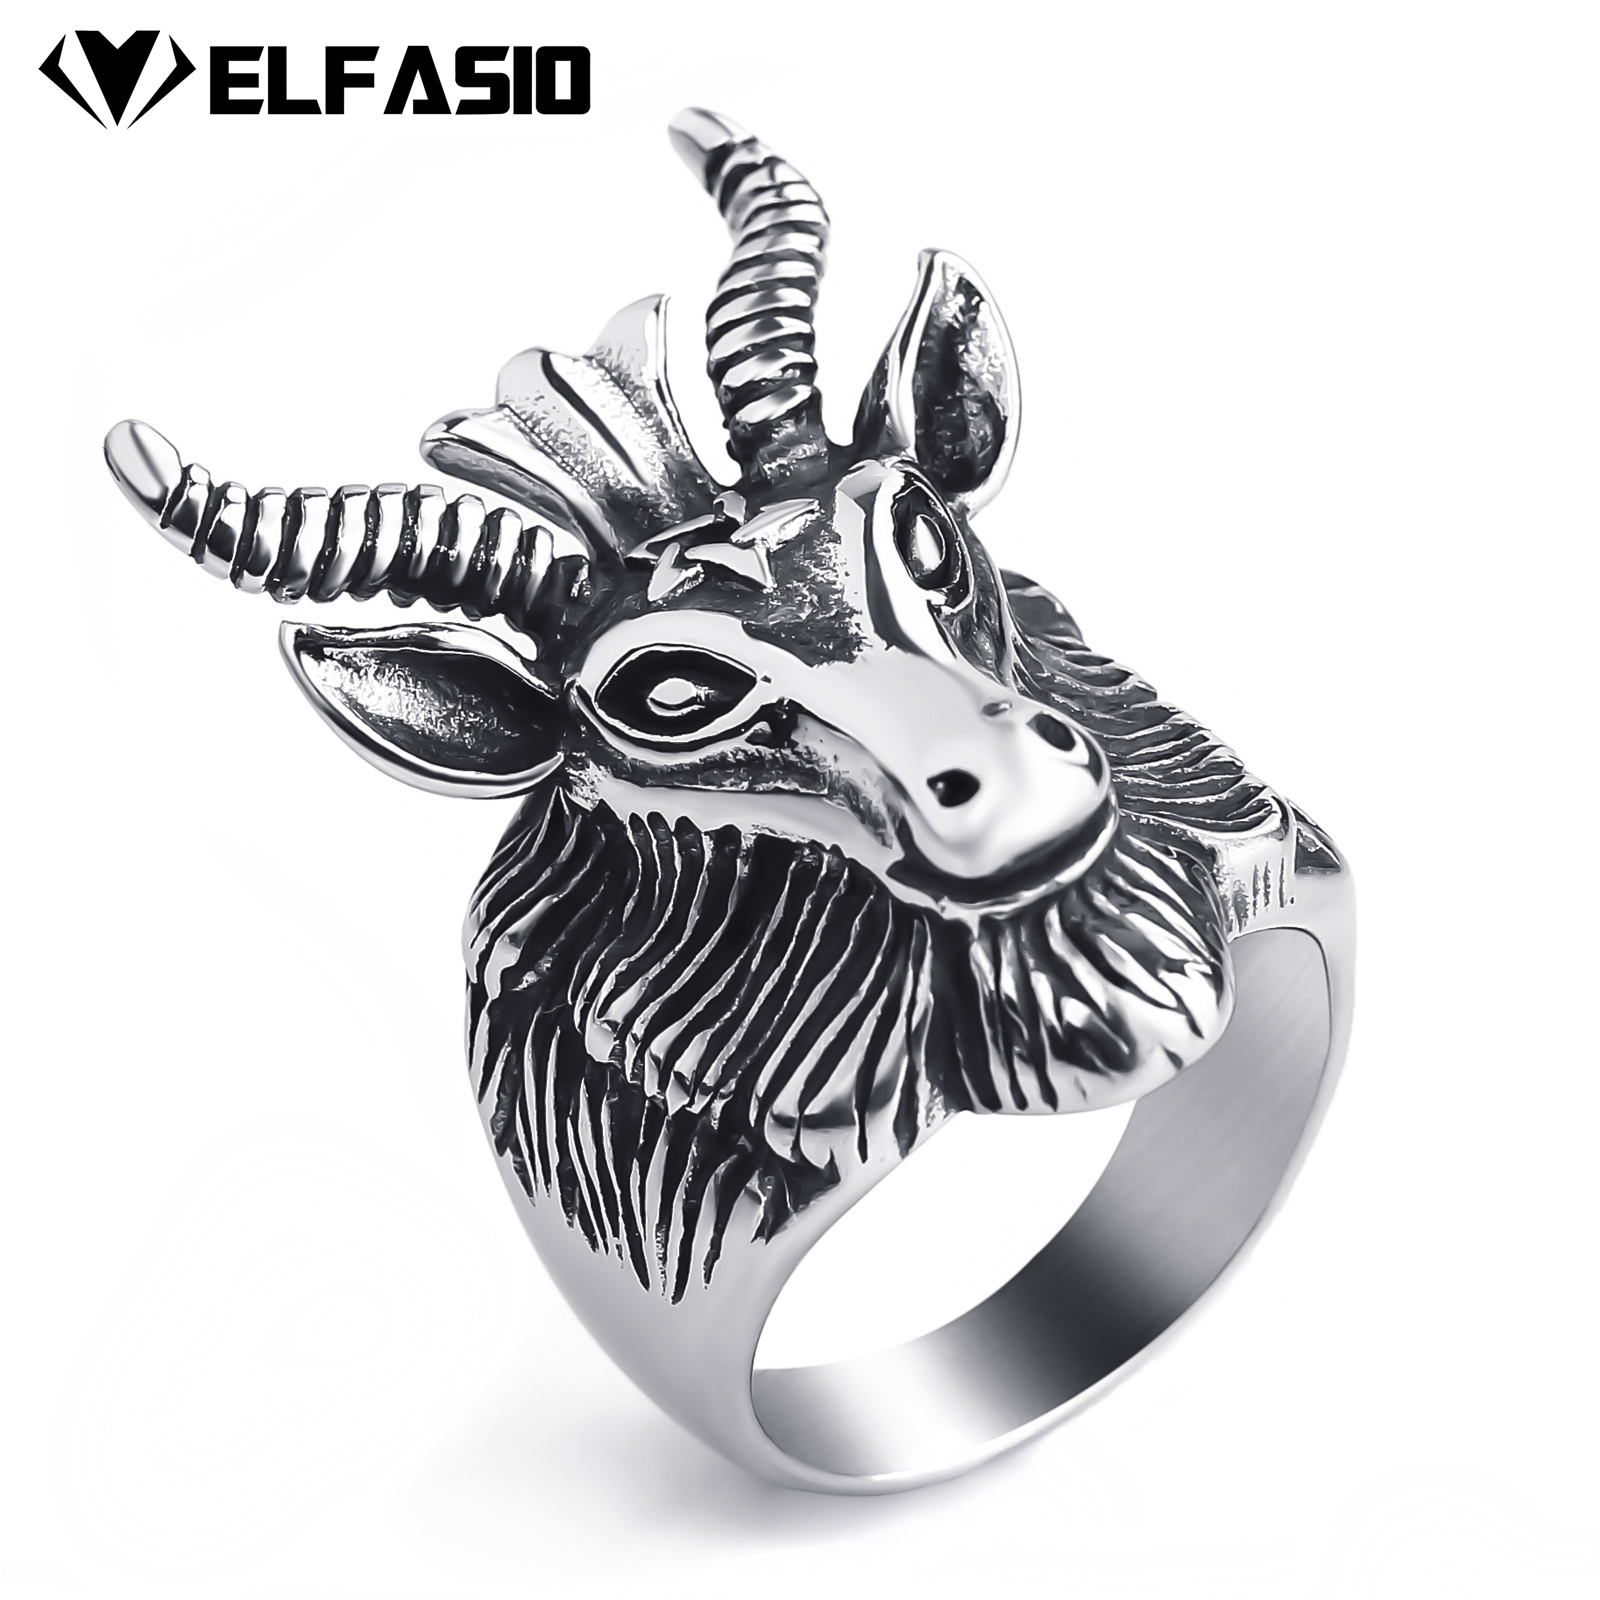 Mens Stainless Steel Baphomet Ring Pentagram Goats Head Horns Occult Satan Devil Biker Jewelry Size 8-13 Детская кроватка